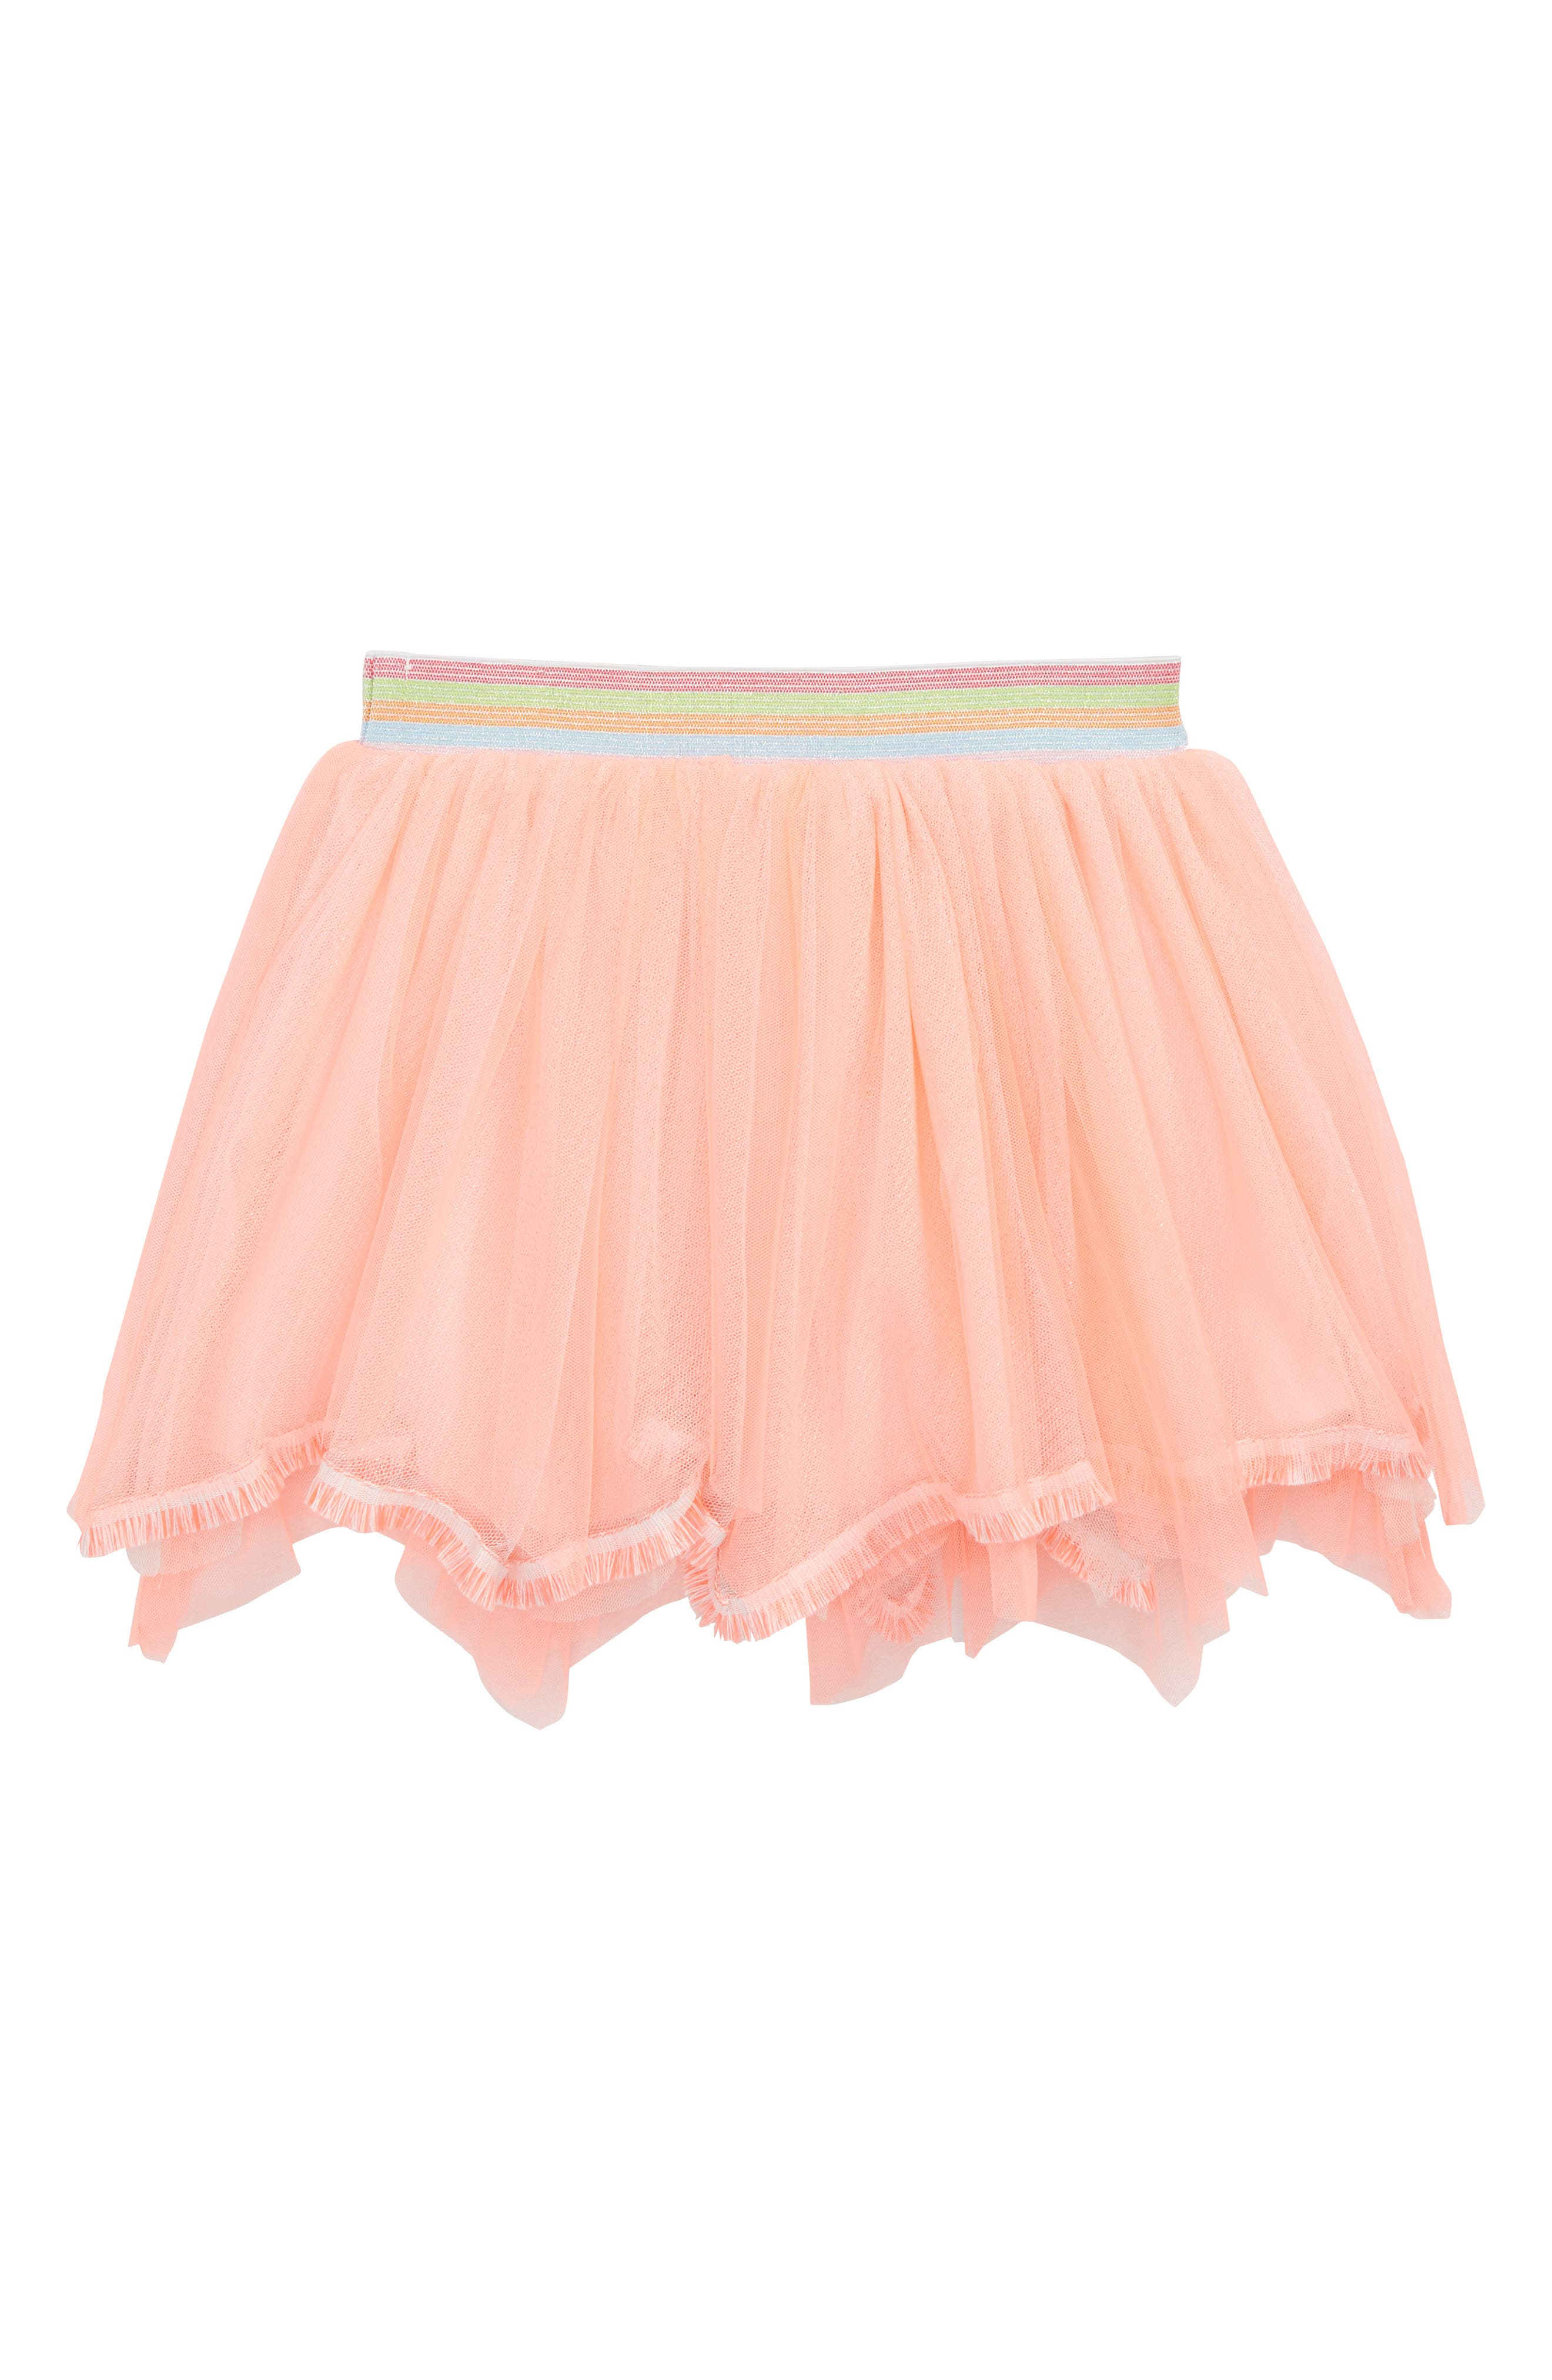 Fringed Hem Tutu Skirt,                             Main thumbnail 1, color,                             Orange